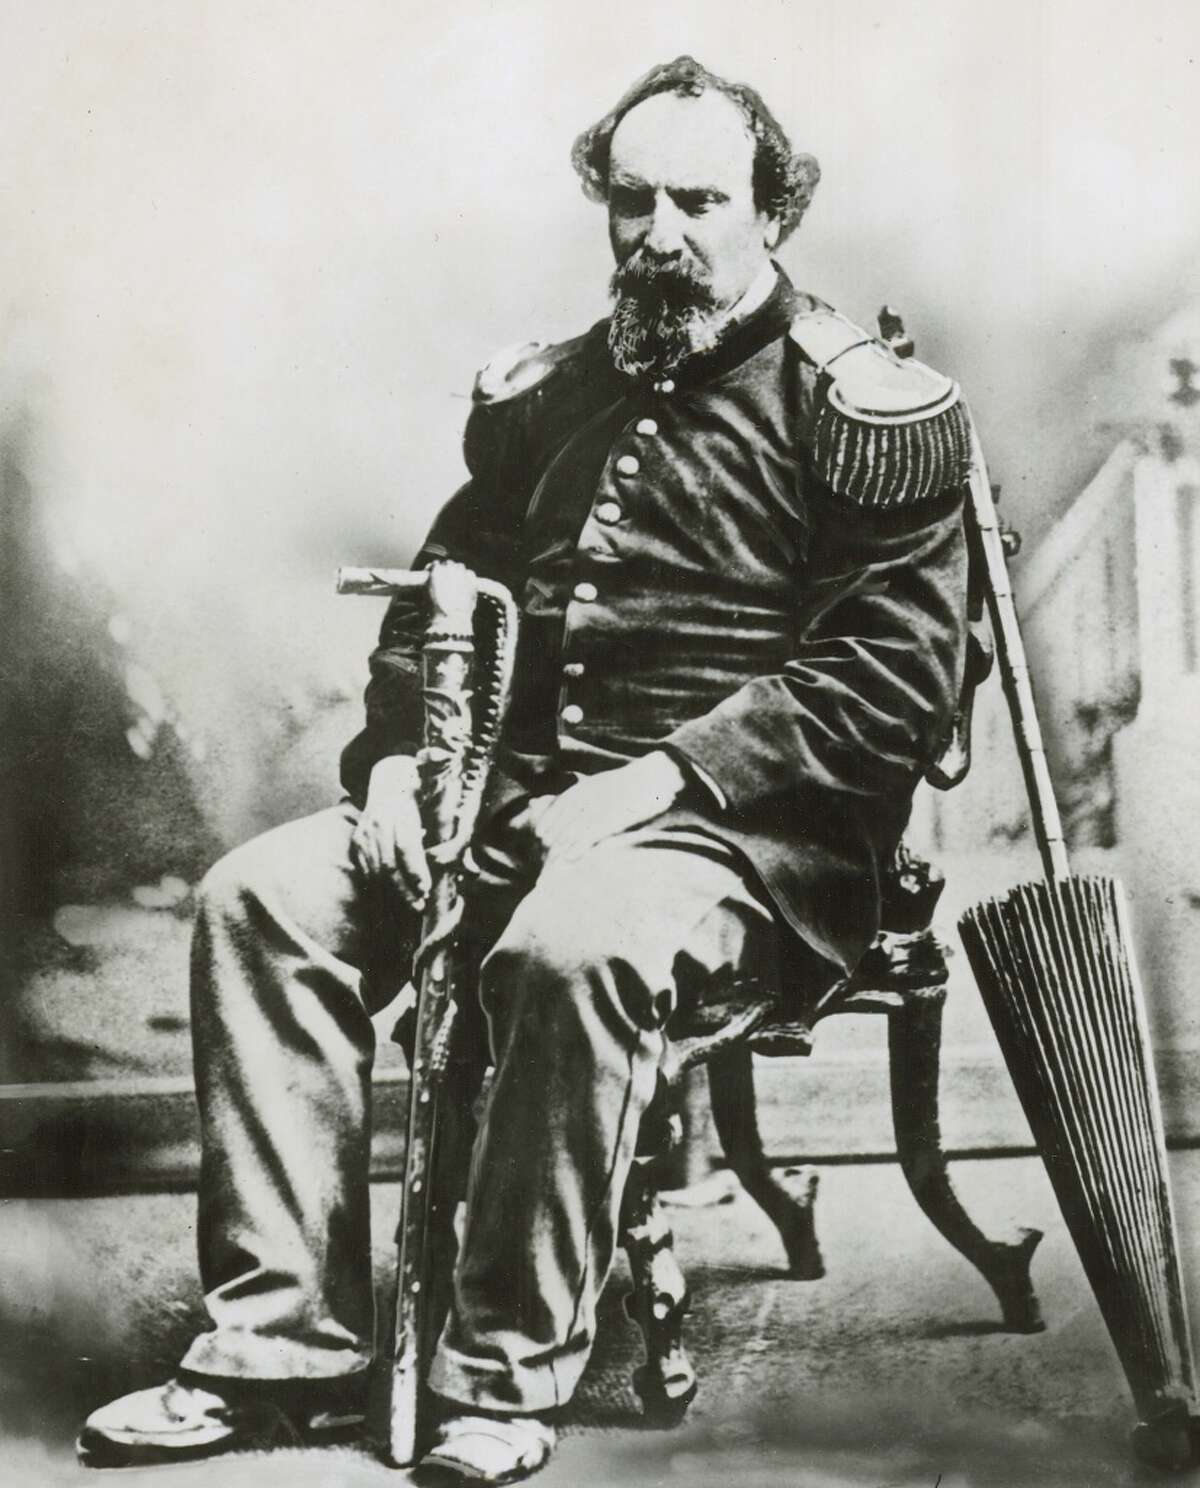 """1. Emperor Norton- The self-proclaimed Imperial Majesty Emperor Norton I proclaimed himself """"Emperor of these United States"""" and subsequently """"Protector of Mexico"""" in 1859."""